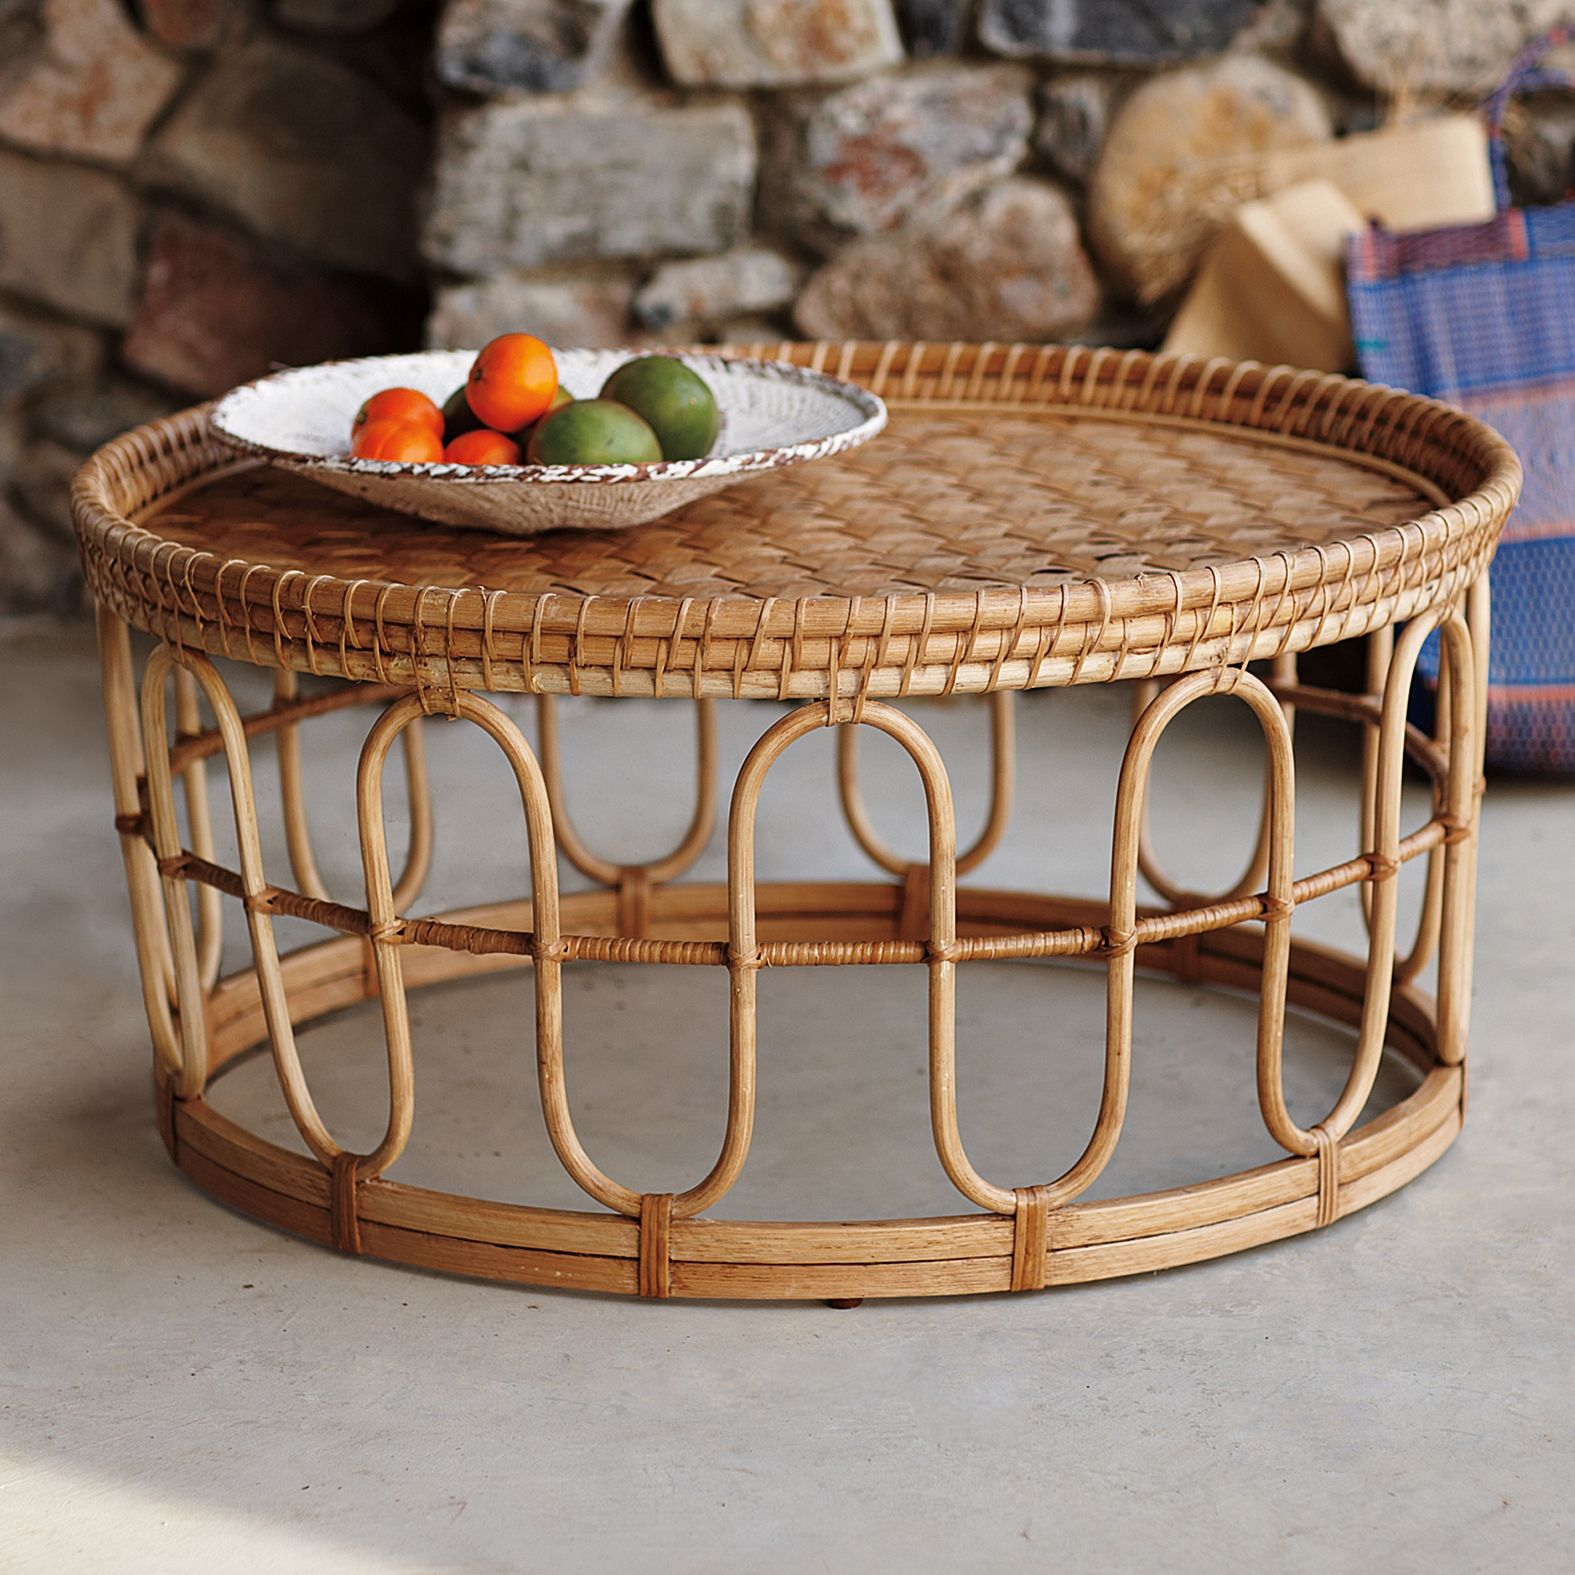 rattan side tables living room slate floor tiles banda coffee table serena lily books worth reading in 2019